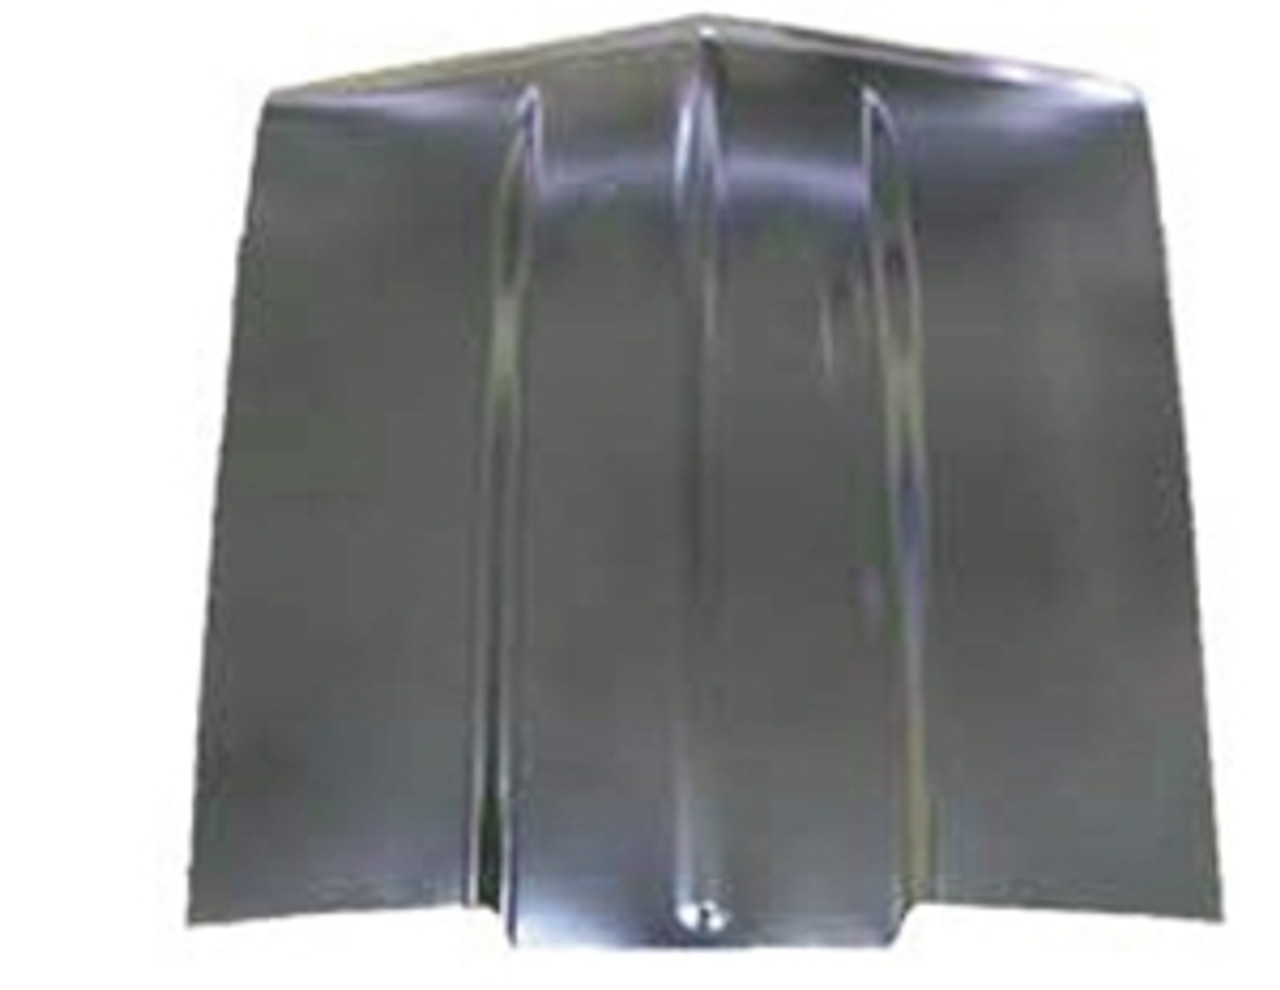 1970-72 Chevrolet Chevelle Rear Edge Hood To Cowl Seals Mounts To Hood Pair